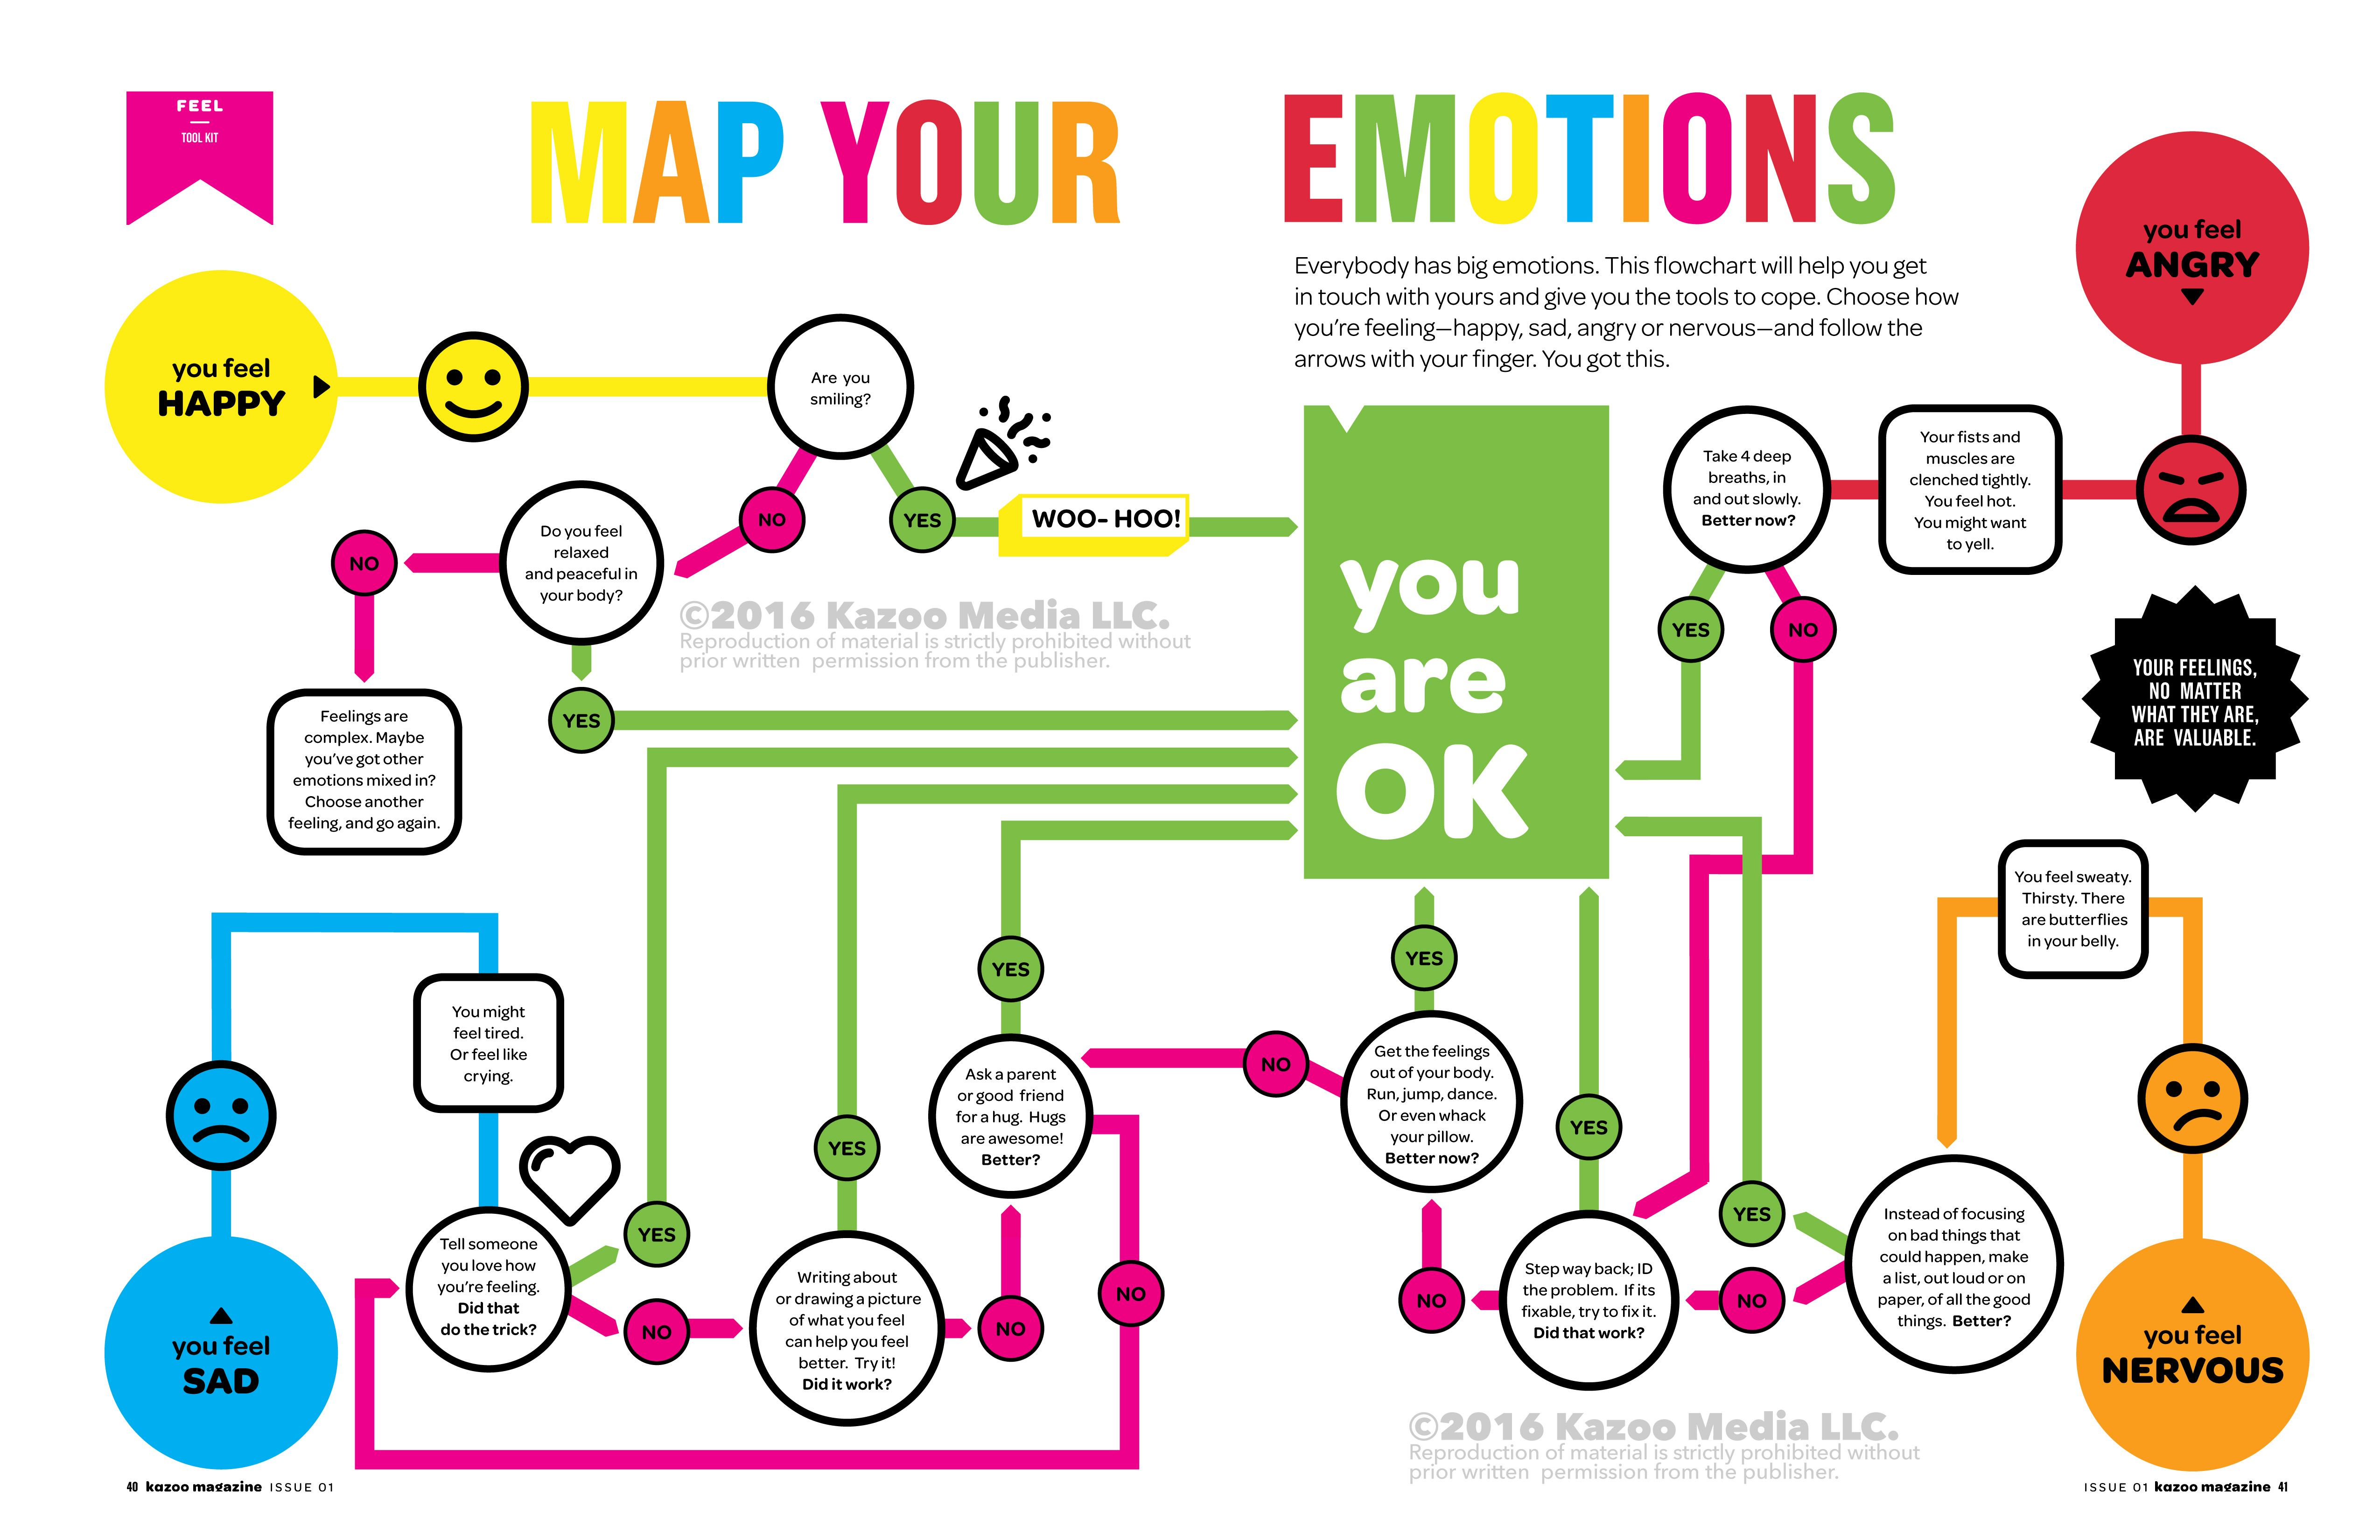 Kazoo Magazine Emotions Map Emotions The Brain For Kids Maps For Kids